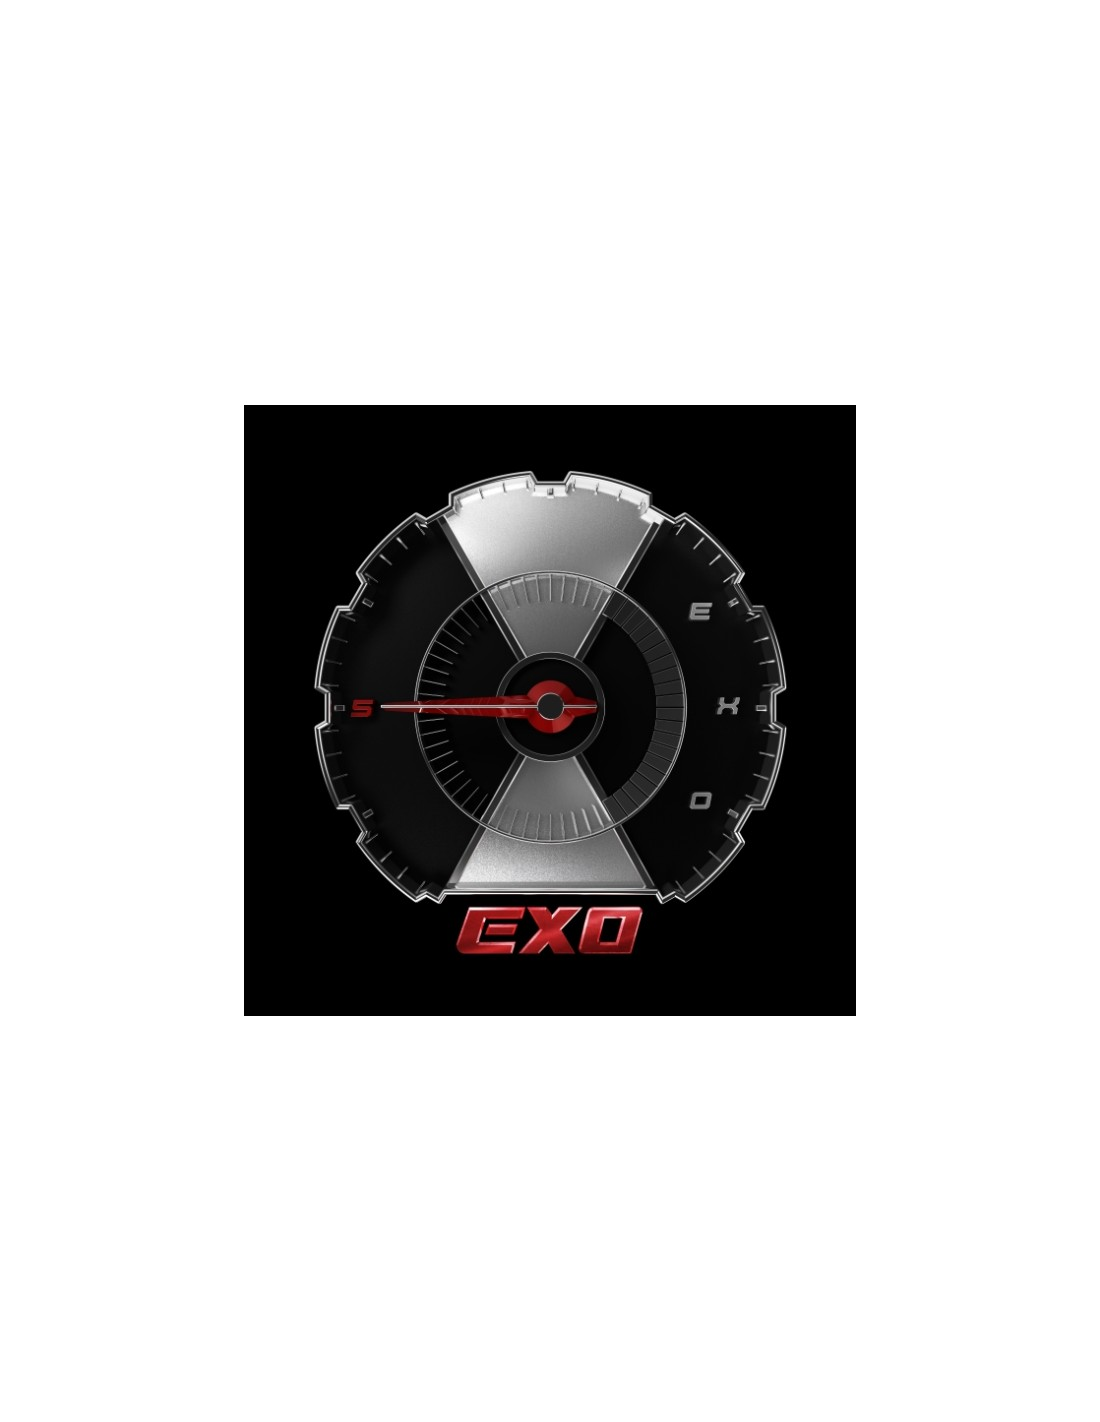 Exo Don't Mess Up My Tempo : don't, tempo, Album, DON'T, TEMPO(Random, Poster